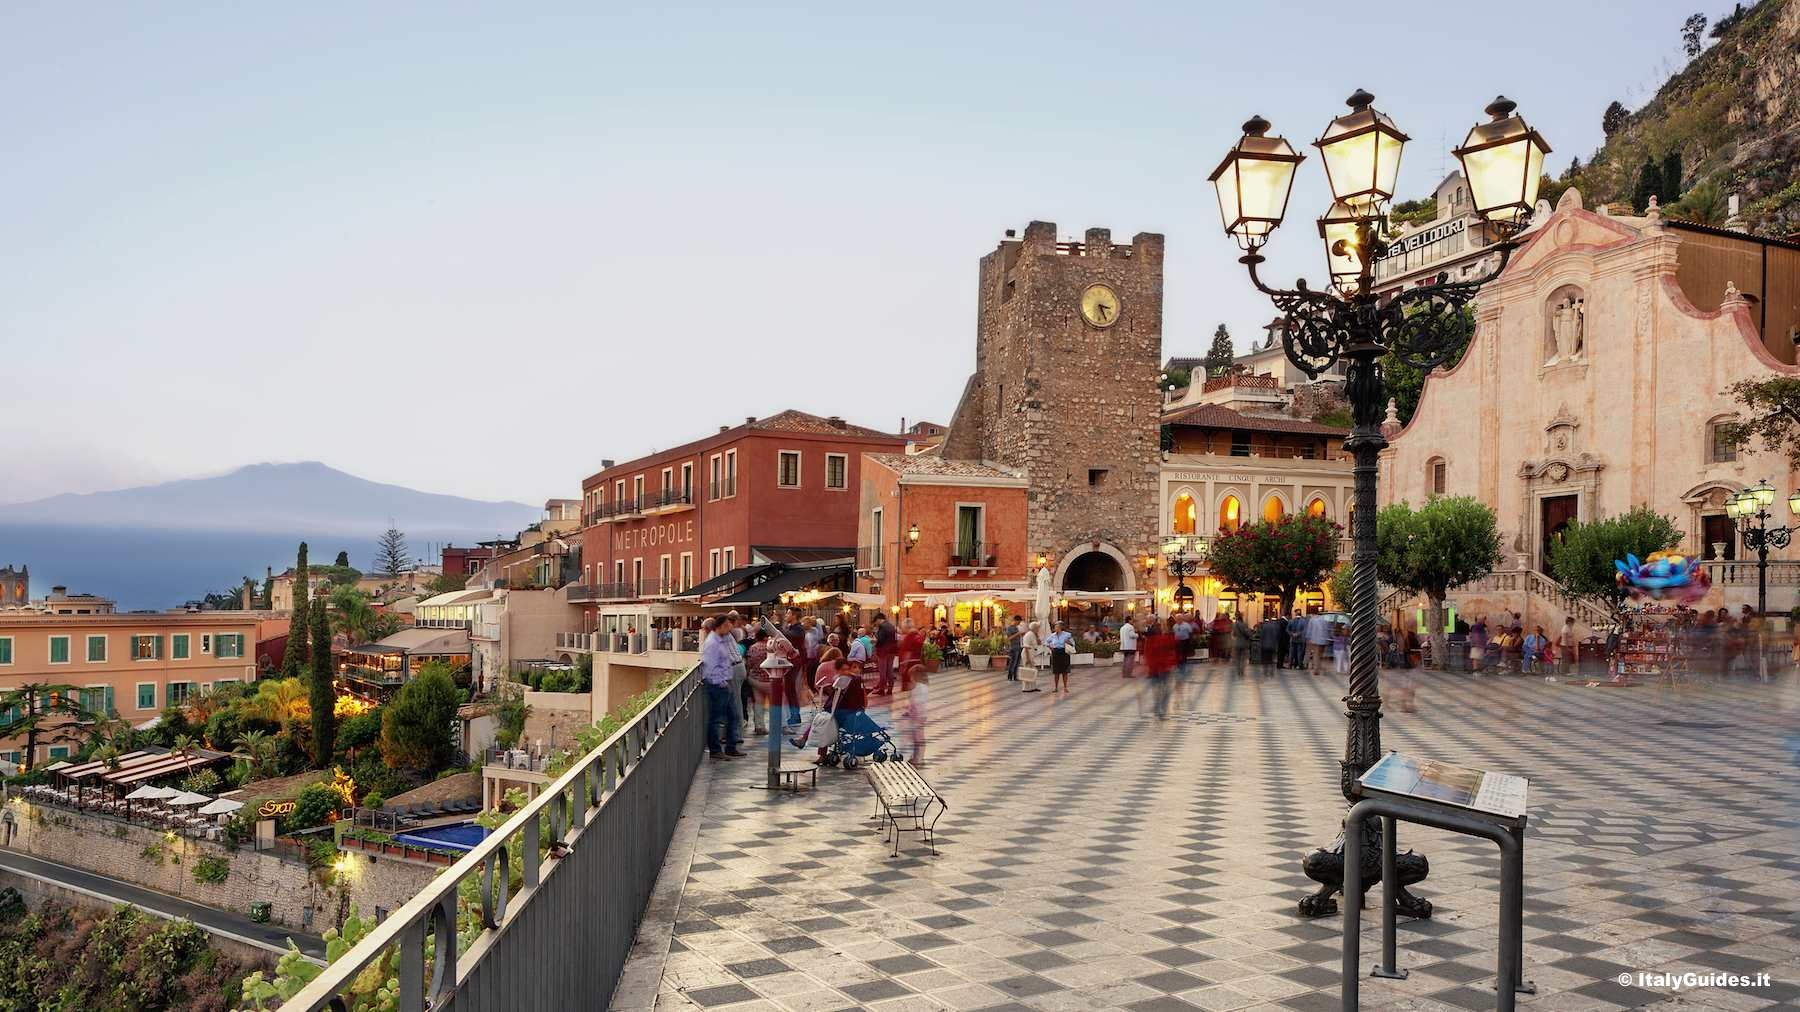 Pictures of Taormina photo gallery and movies of Taormina Sicily  Italy  ItalyGuidesit